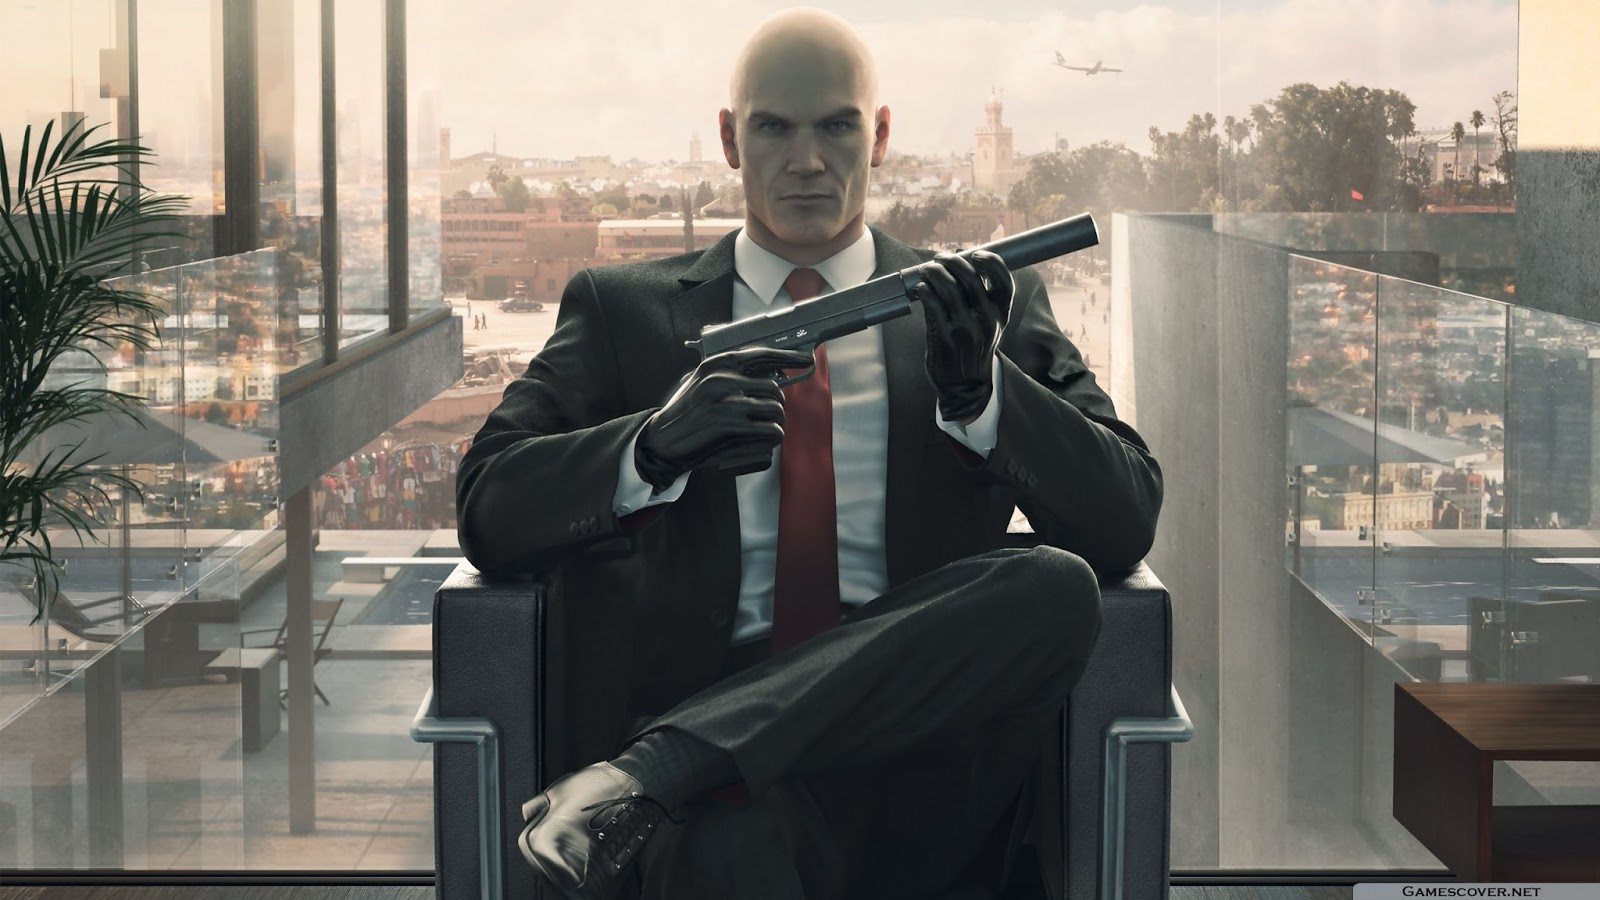 Hitman 6 Hot HD Wallpaper 2560x1440